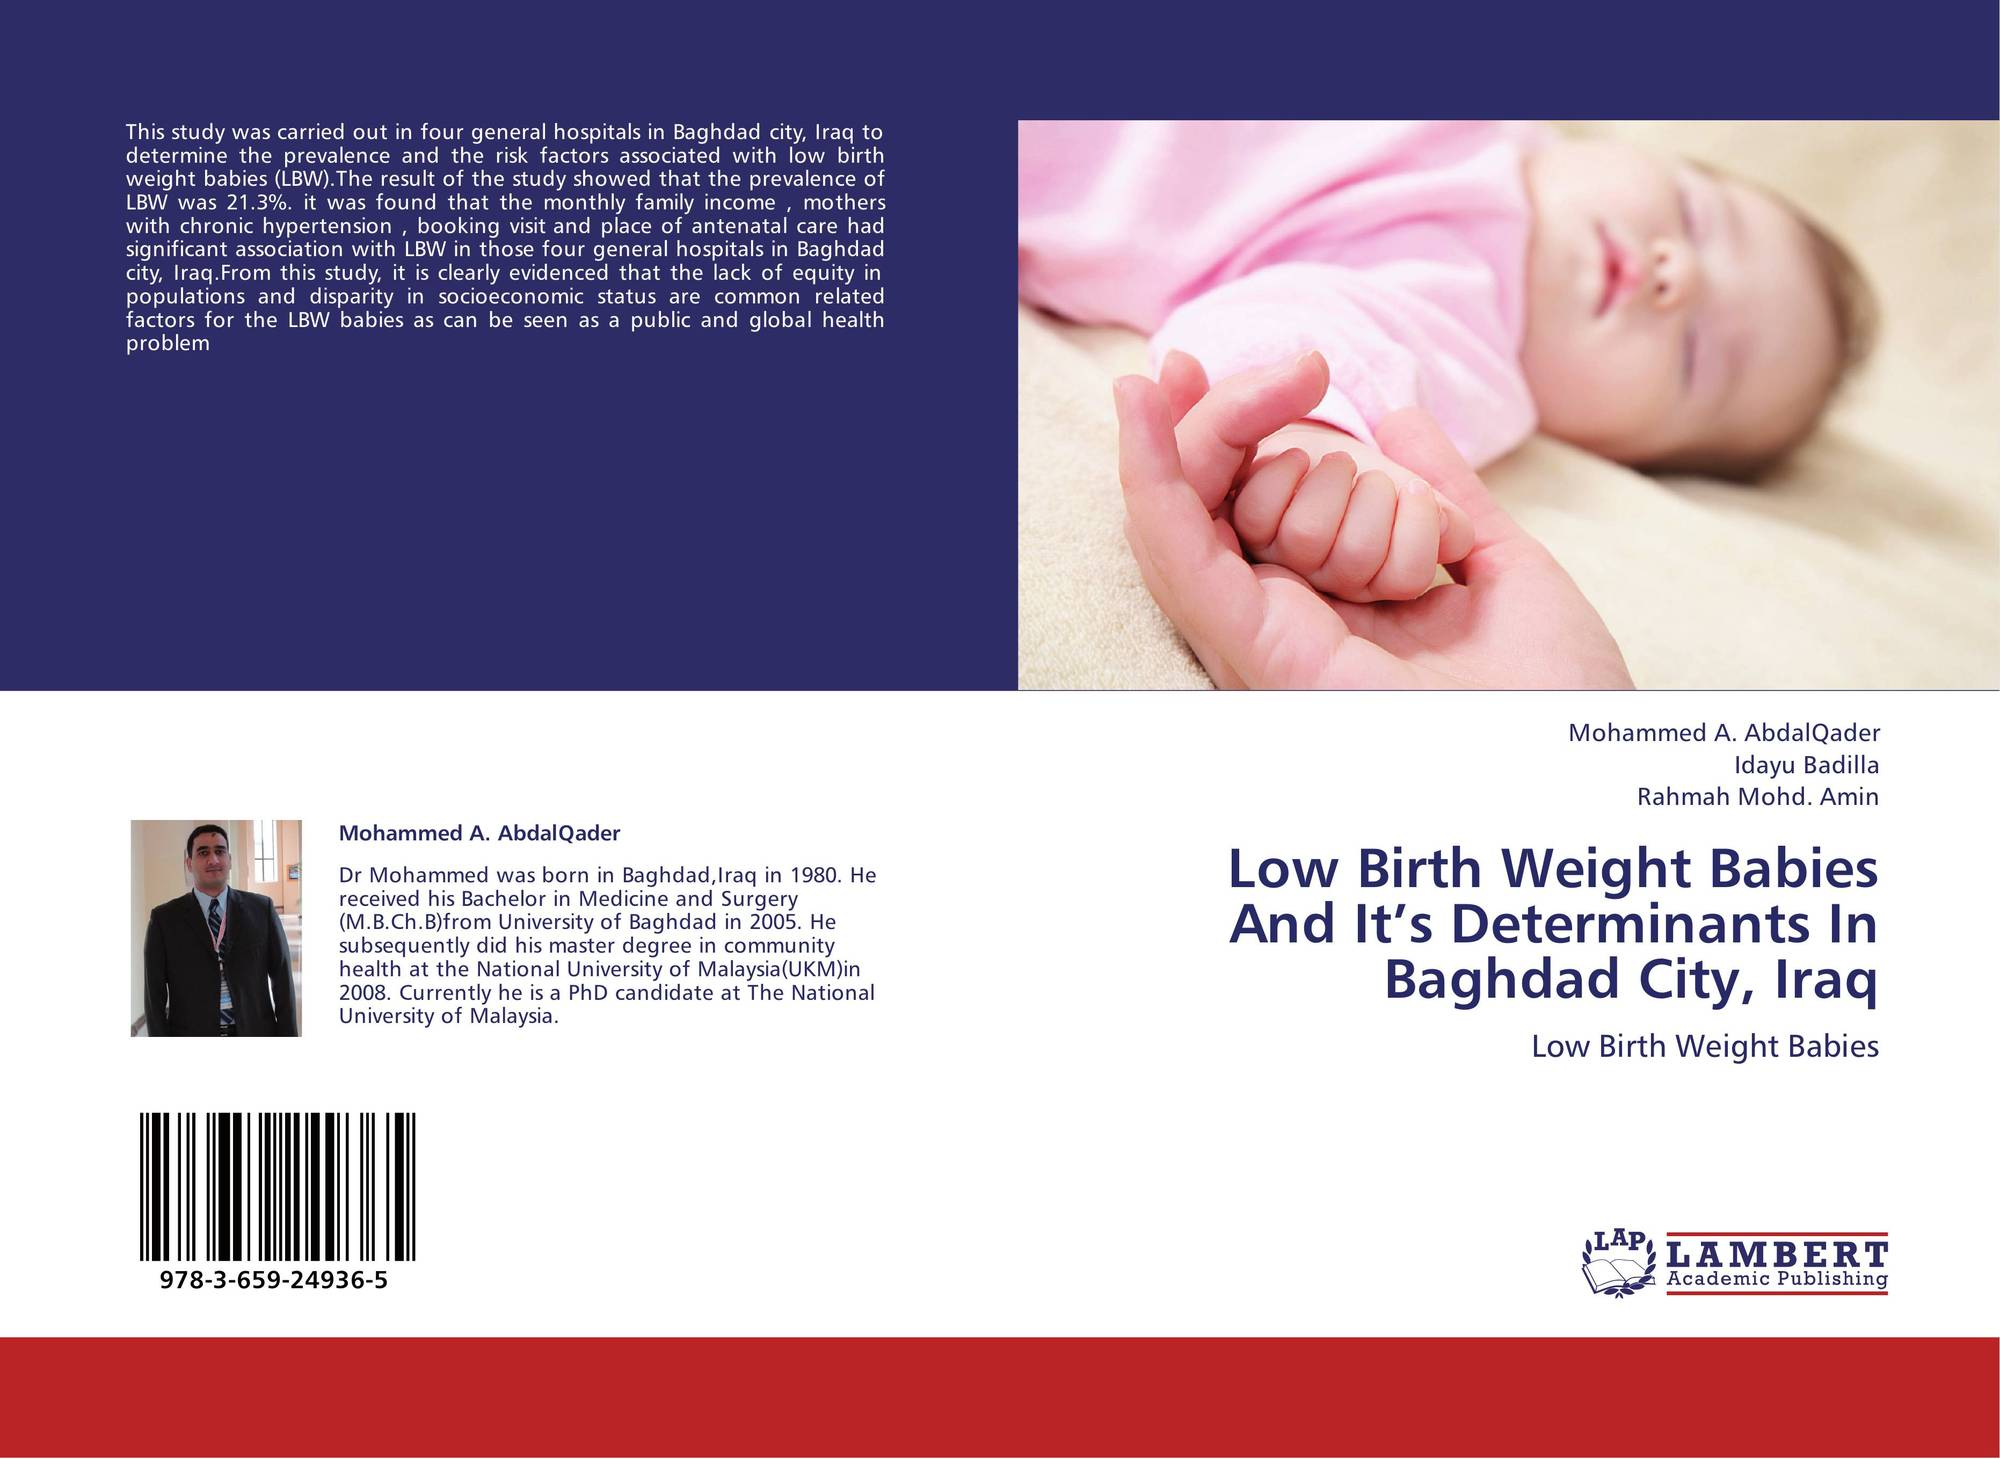 Low Birth Weight Babies And It's Determinants In Baghdad